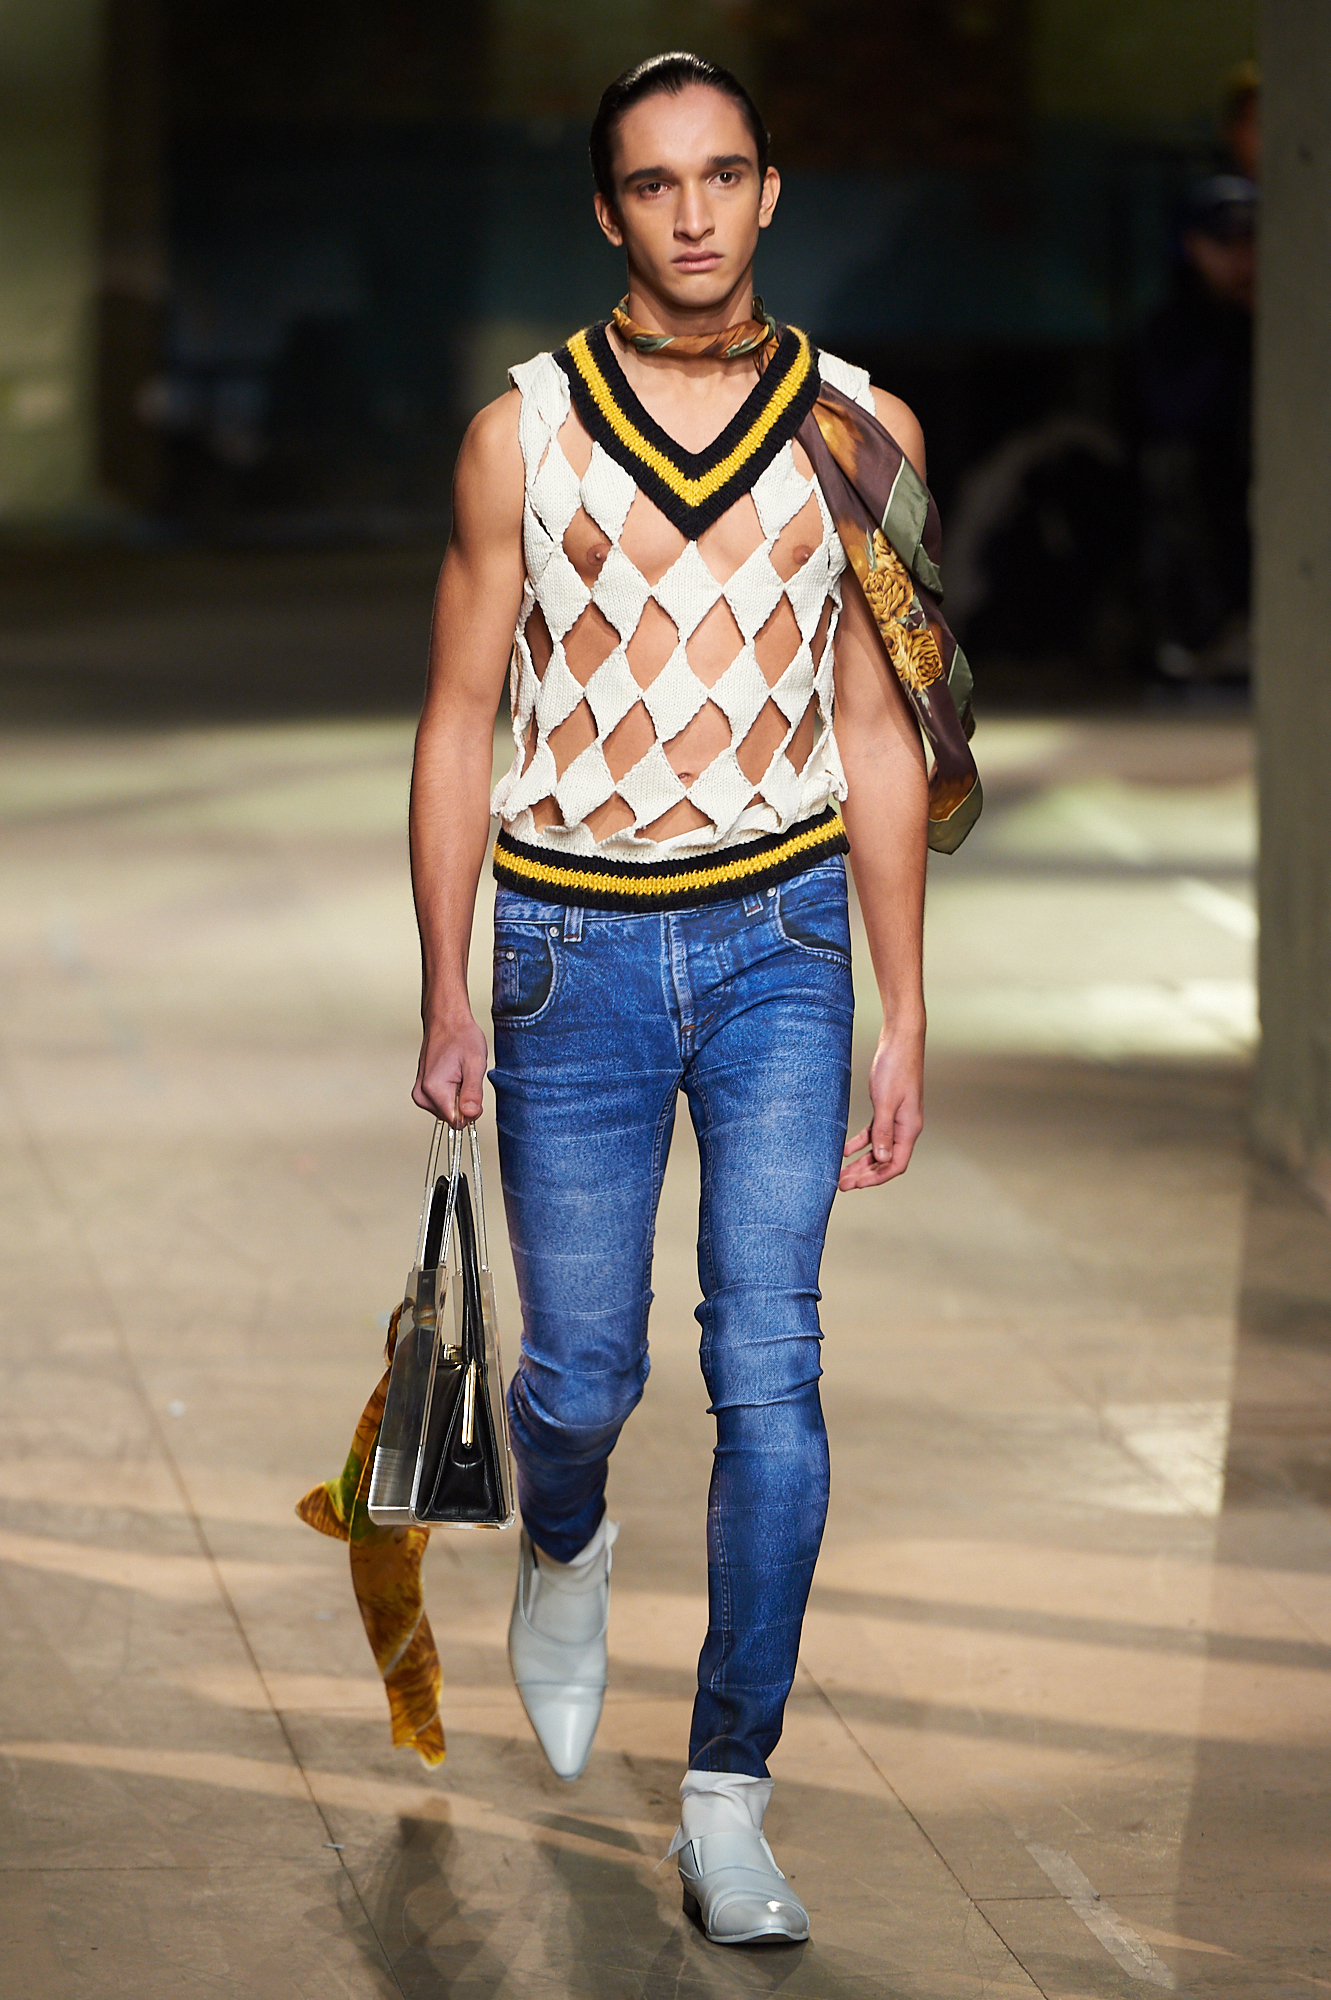 Argyle pattern cut out gilet by Stefan Cooke at the Man showcase sponsored by TopMan.  Foto Alan West for MsCastroRides